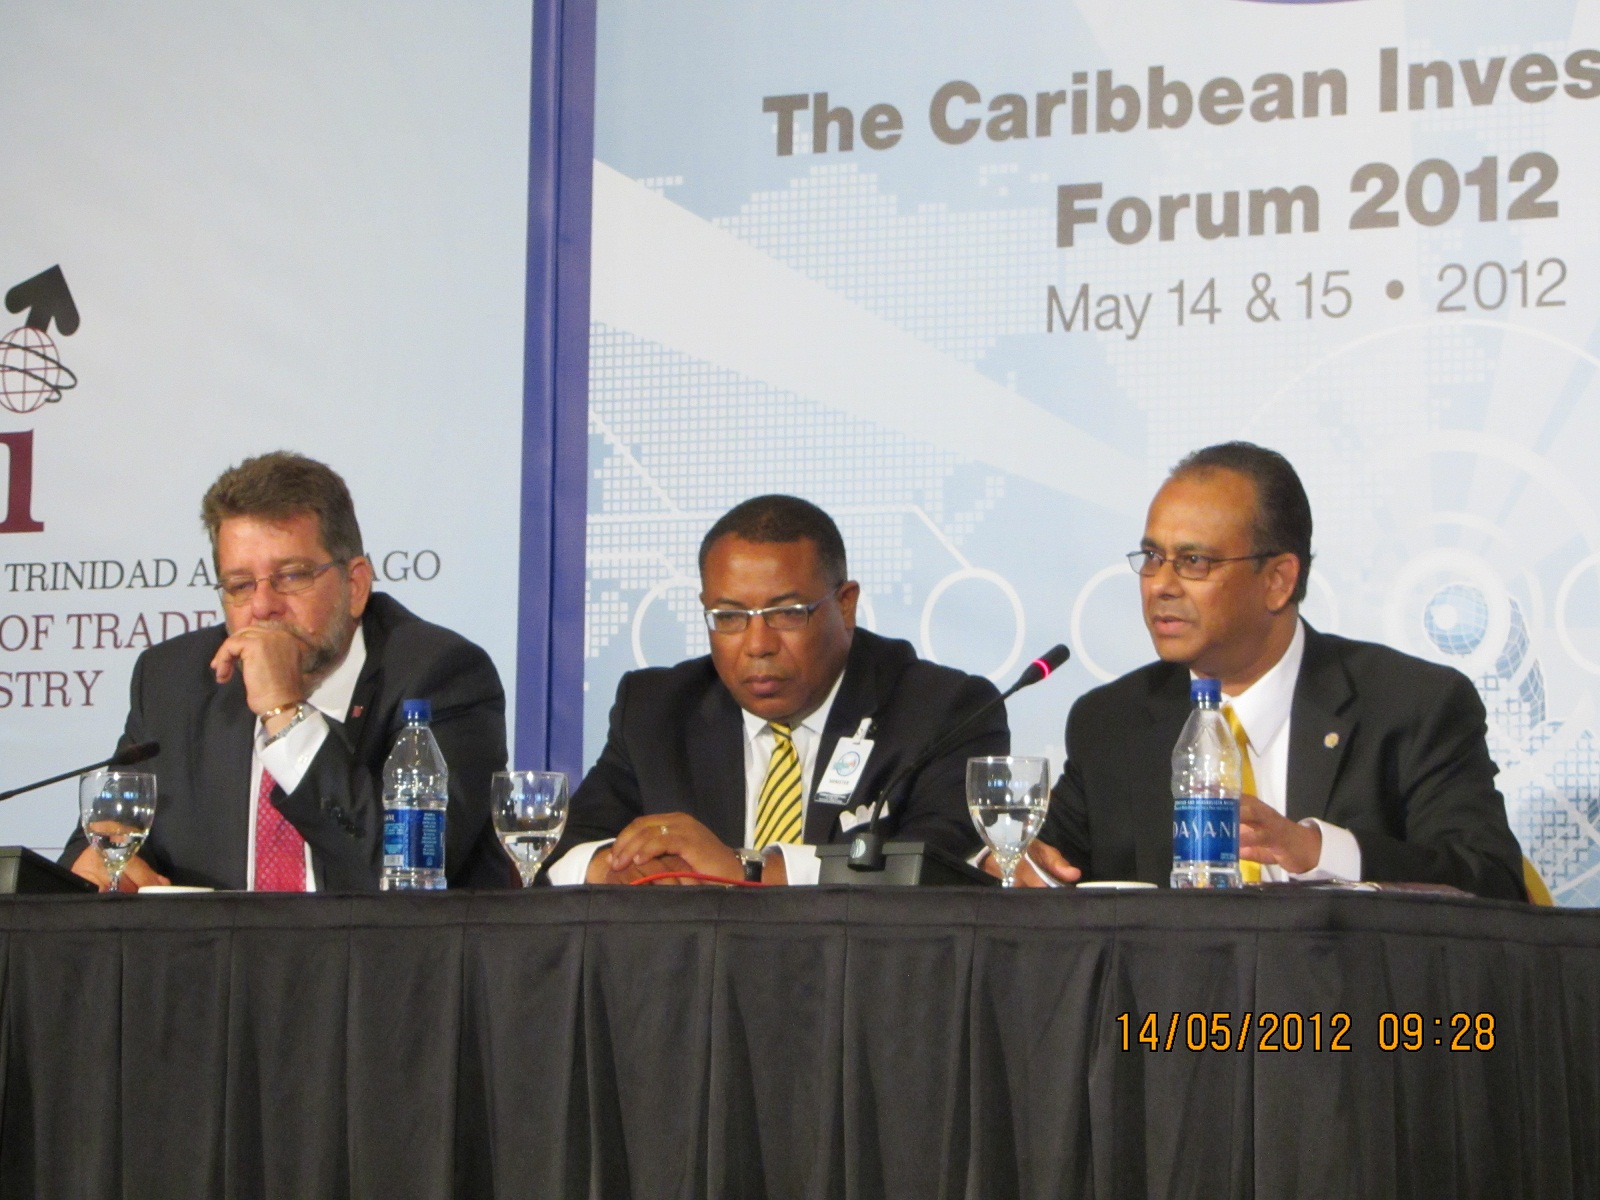 The Honourable Stephen Cadiz, Minister of Trade and Industry, Trinidad and Tobago, the HonourableAnthony Hylton, Minister of Industry, Investment and Commerce, Jamaica and ASG Amb. Albert Ramdin during a panel discussion at the Caribbean Investment Forum